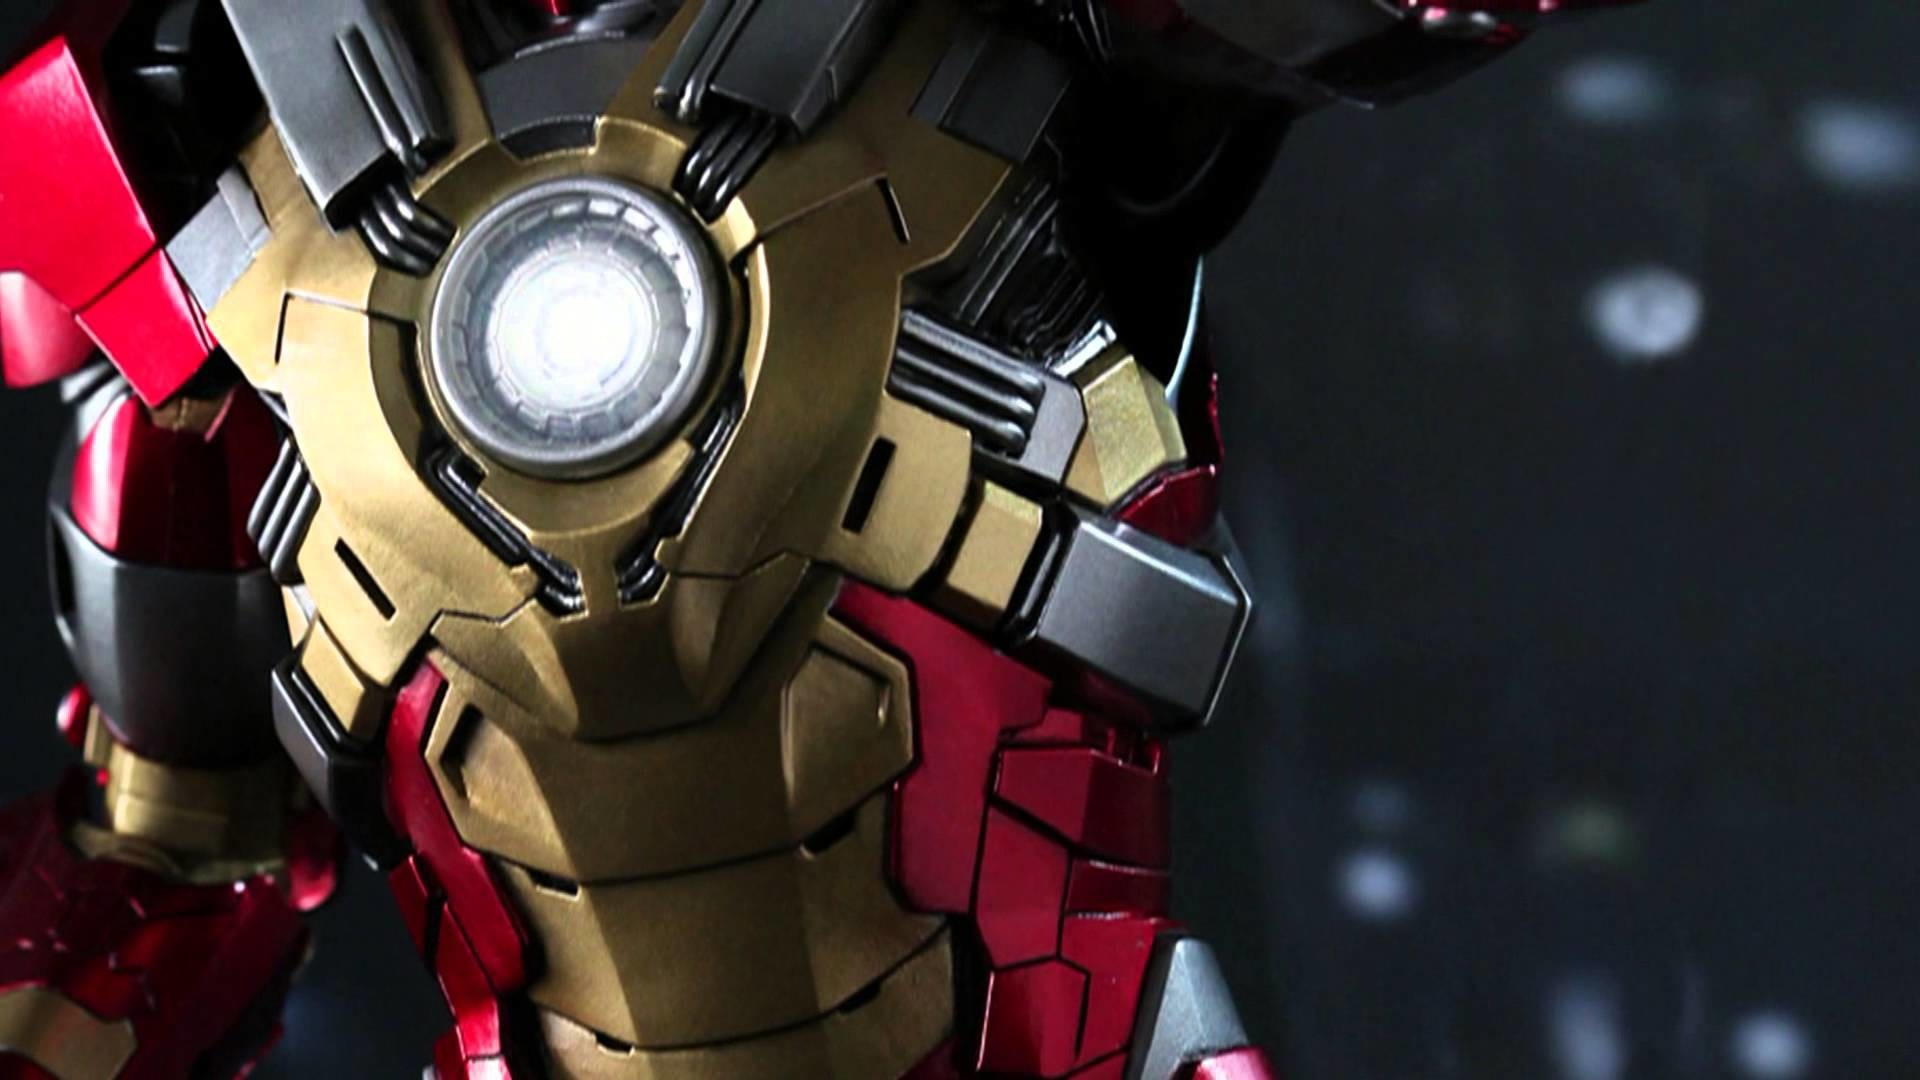 1920x1080 Images For > Iron Man 3 Suit Wallpapers Hd